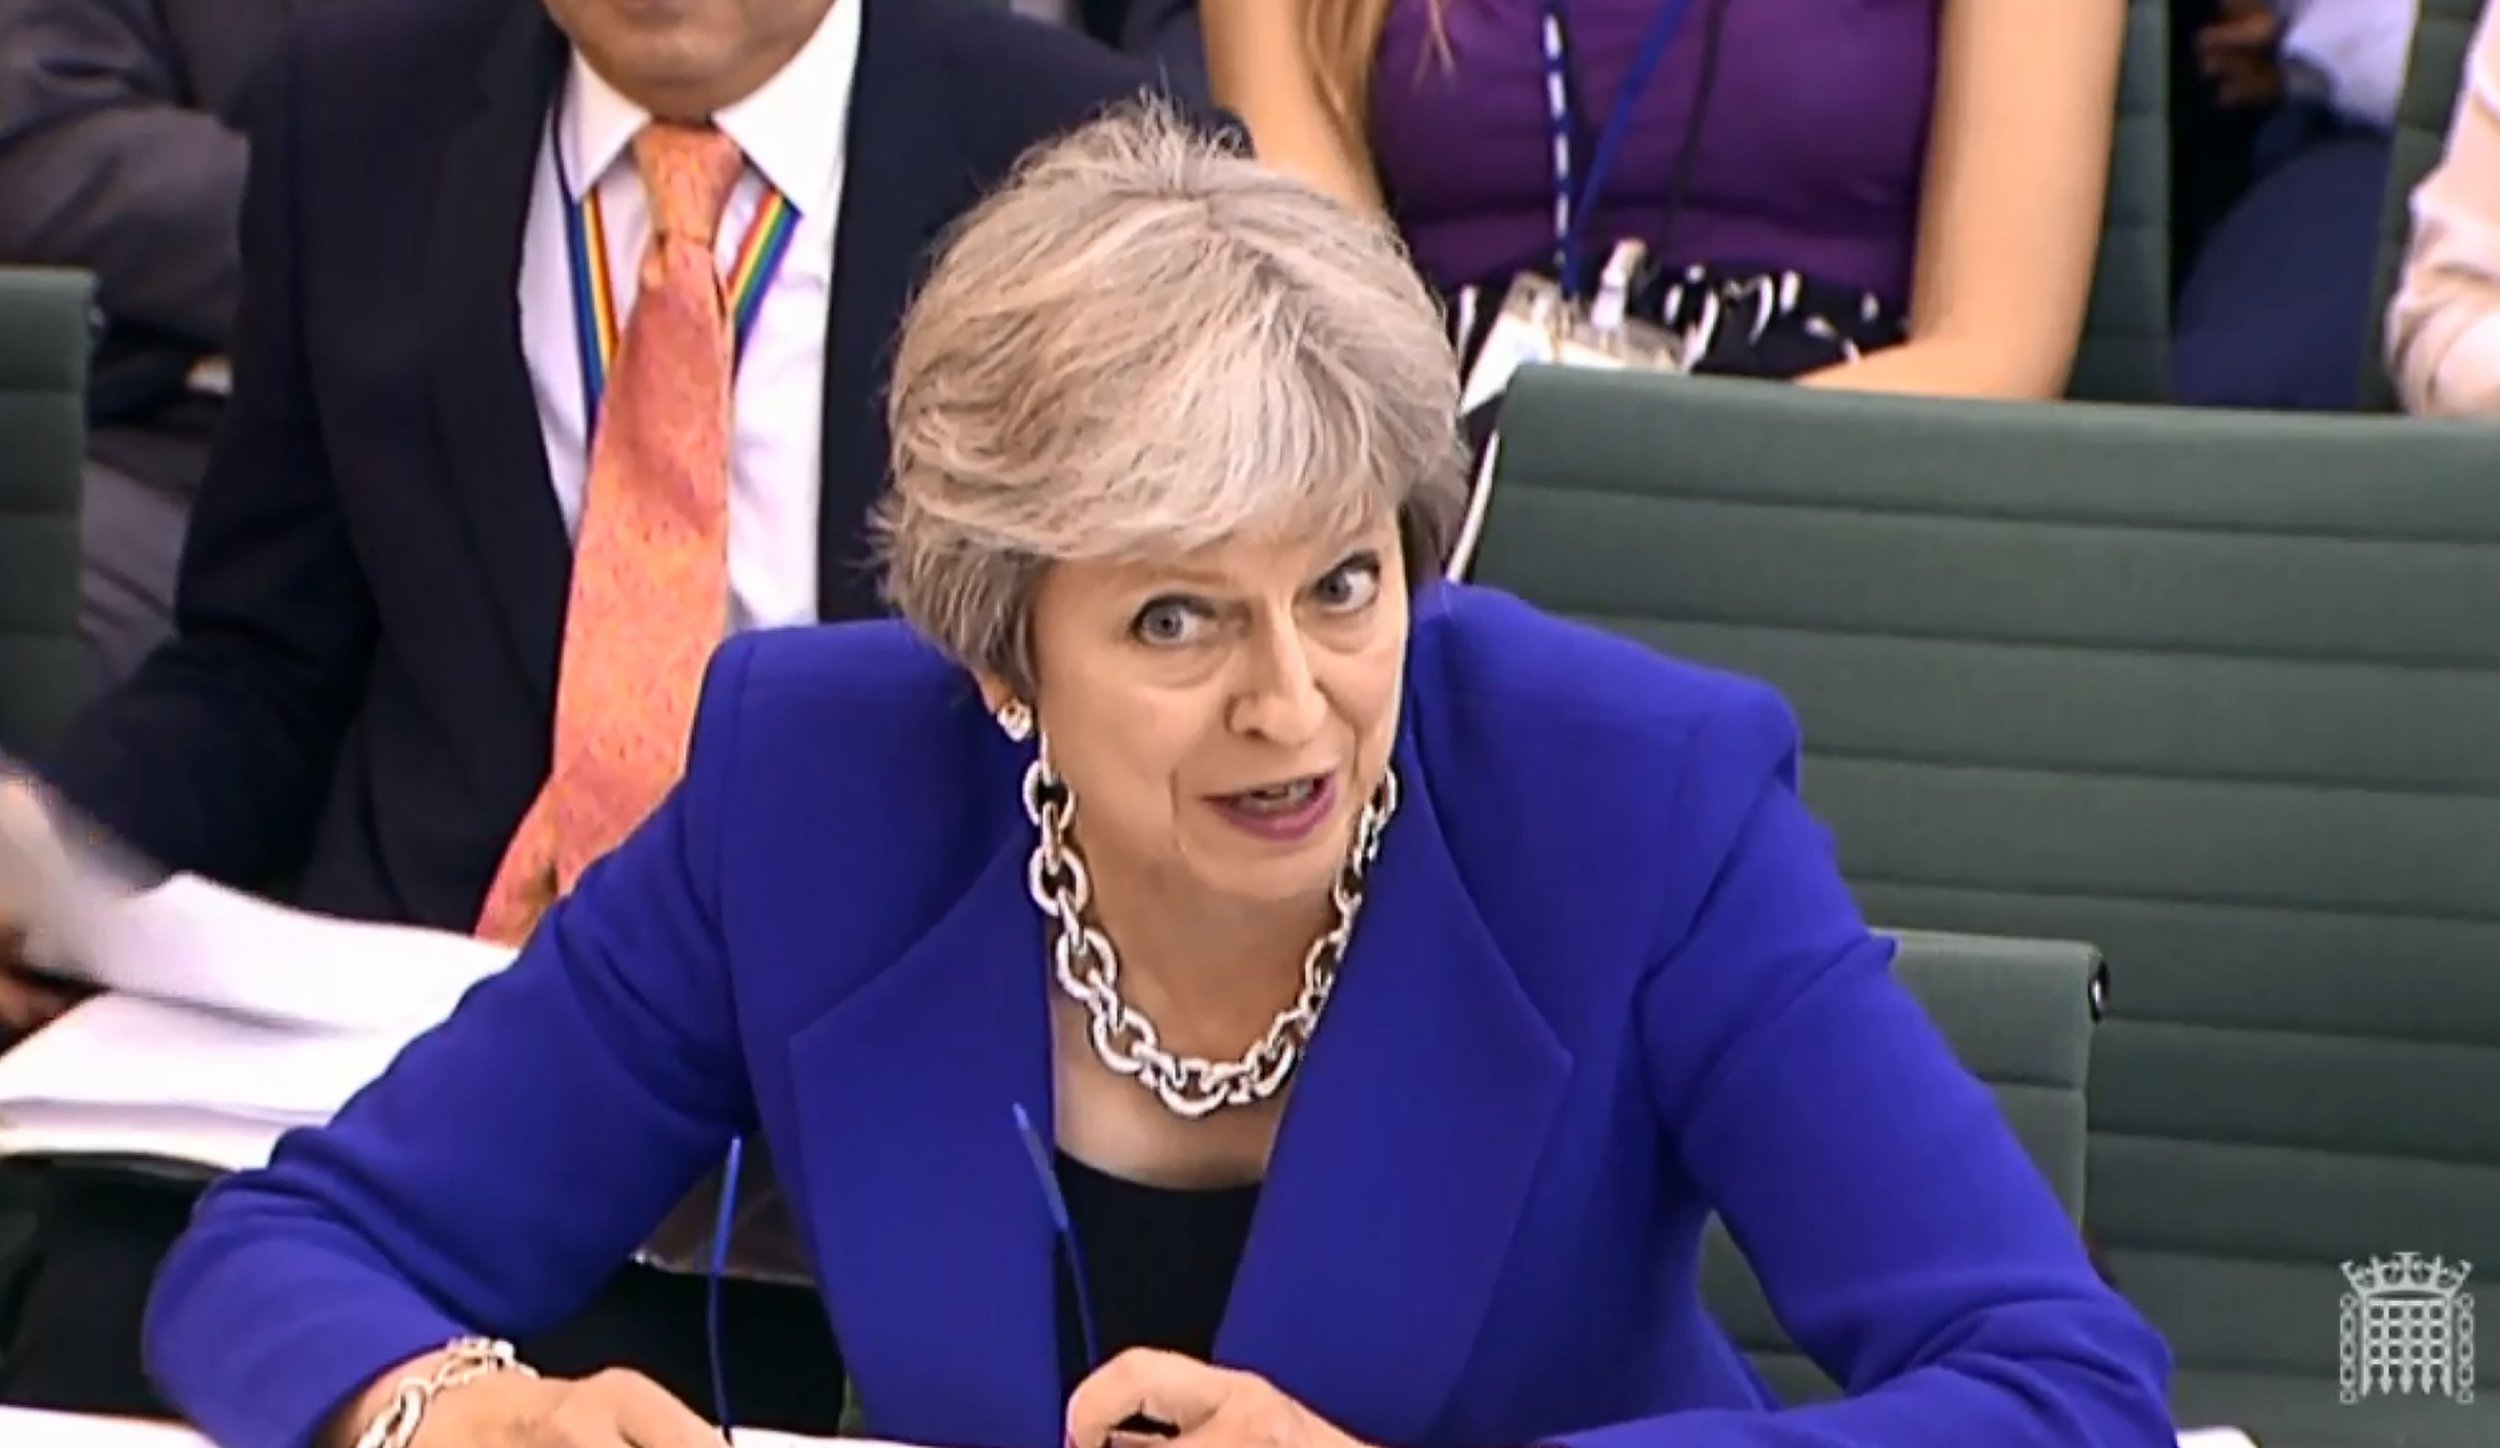 """A video grab from footage broadcast by the UK Parliament's Parliamentary Recording Unit (PRU) shows Britain's Prime Minister Theresa May as she speaks before the Liaison Commitee in the House of Commons in London on July 18, 2018. / AFP PHOTO / PRU AND AFP PHOTO / HO / RESTRICTED TO EDITORIAL USE - MANDATORY CREDIT """" AFP PHOTO / PRU """" - NO USE FOR ENTERTAINMENT, SATIRICAL, MARKETING OR ADVERTISING CAMPAIGNSHO/AFP/Getty Images"""